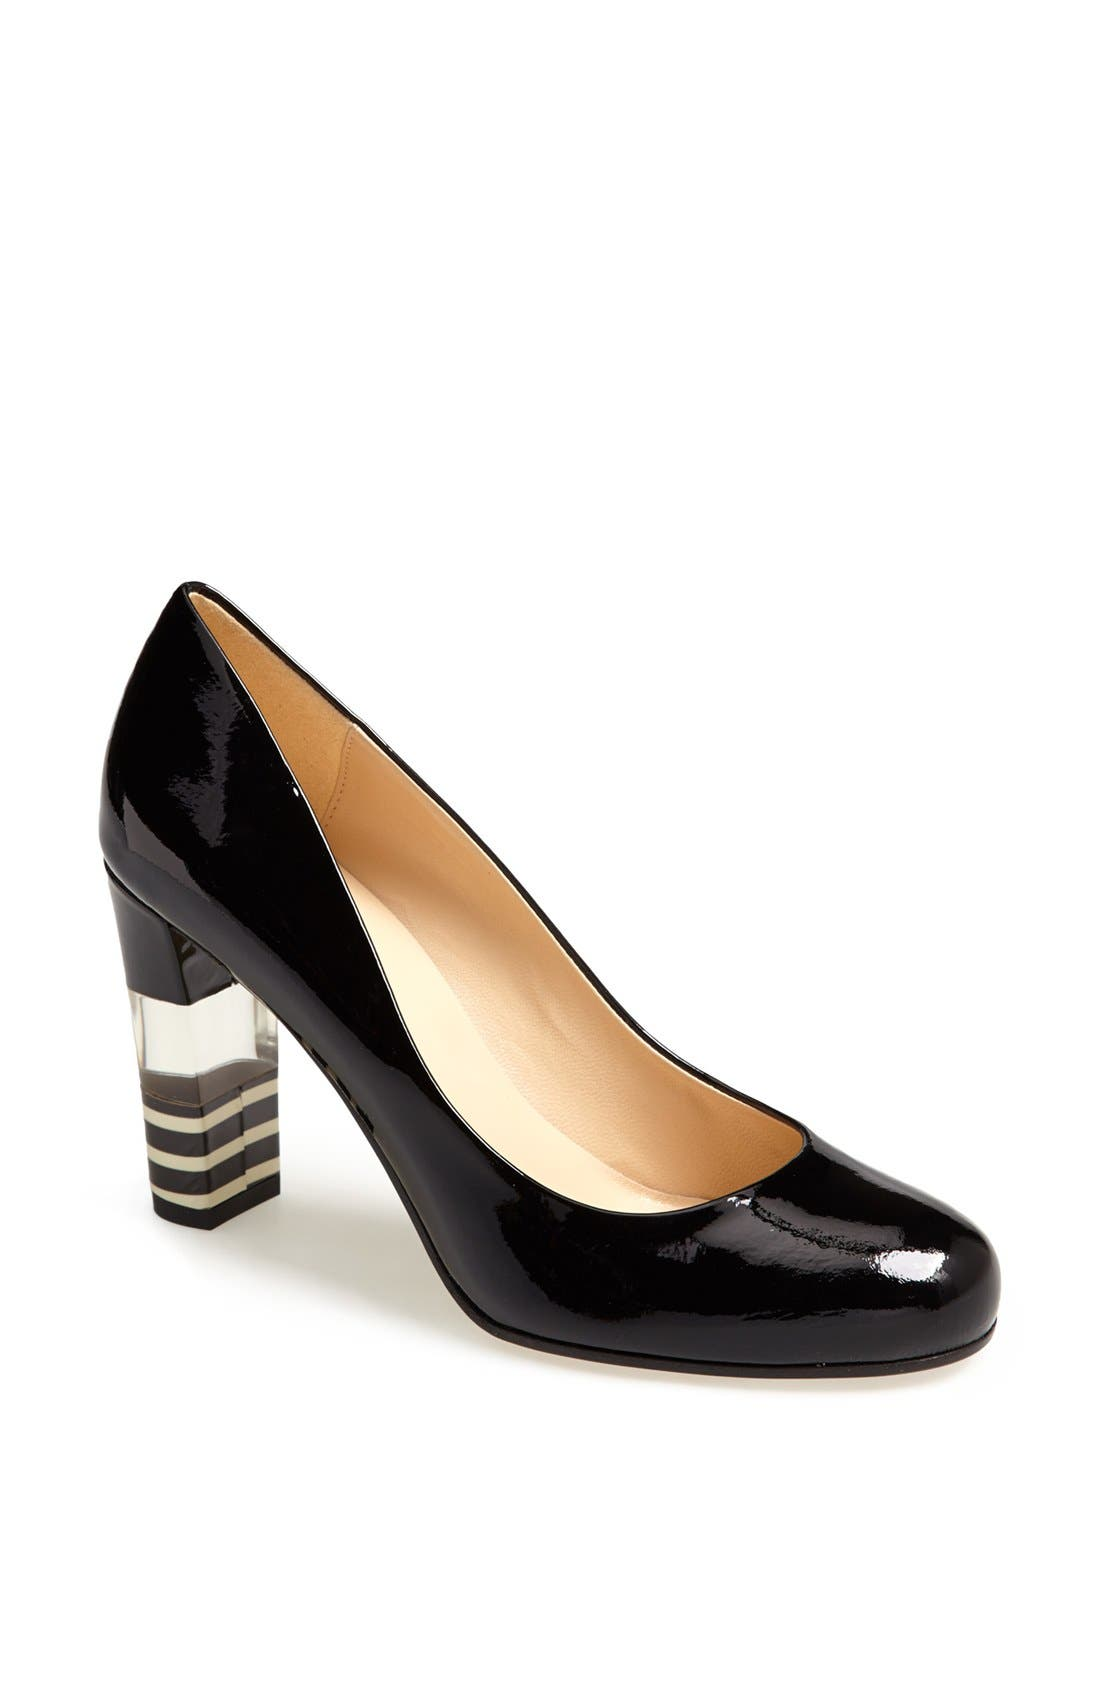 Main Image - kate spade new york 'leslie' leather pump